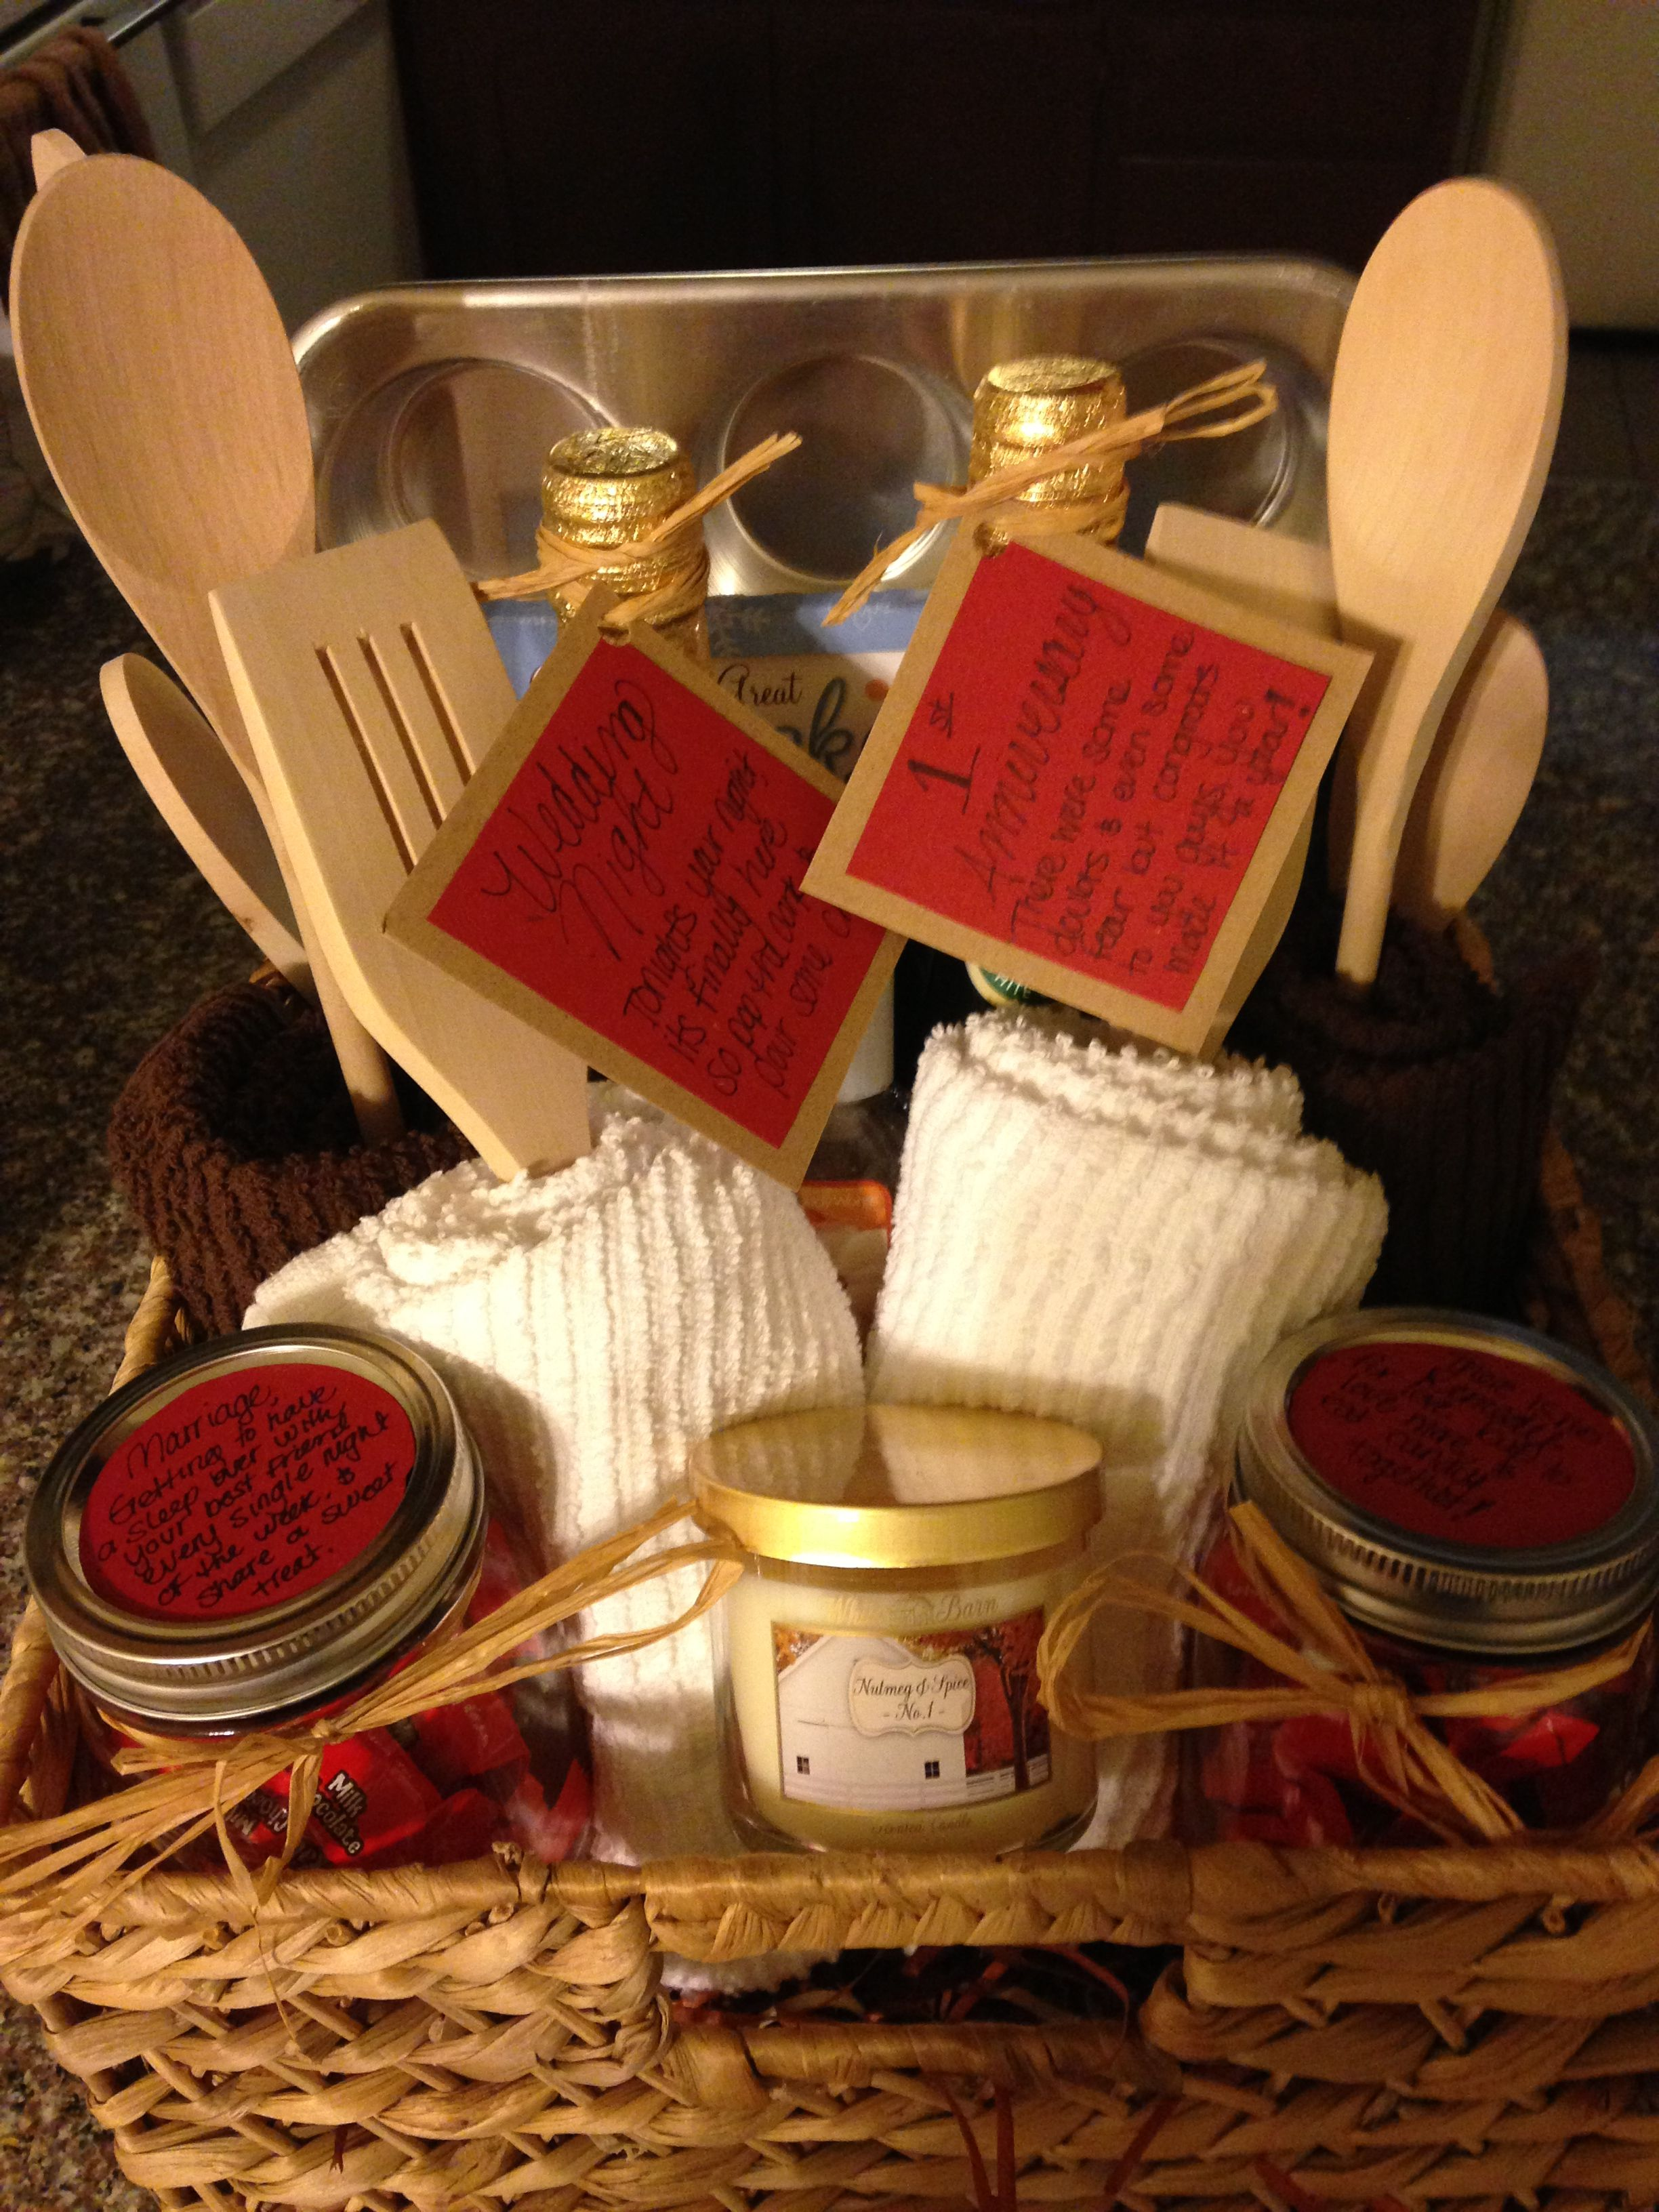 Homemade Bridal Shower Gift Basket Found All The Goodies At Home Goods Put Everything To Homemade Gifts Diy Bridal Shower Gift Baskets House Warming Gift Diy